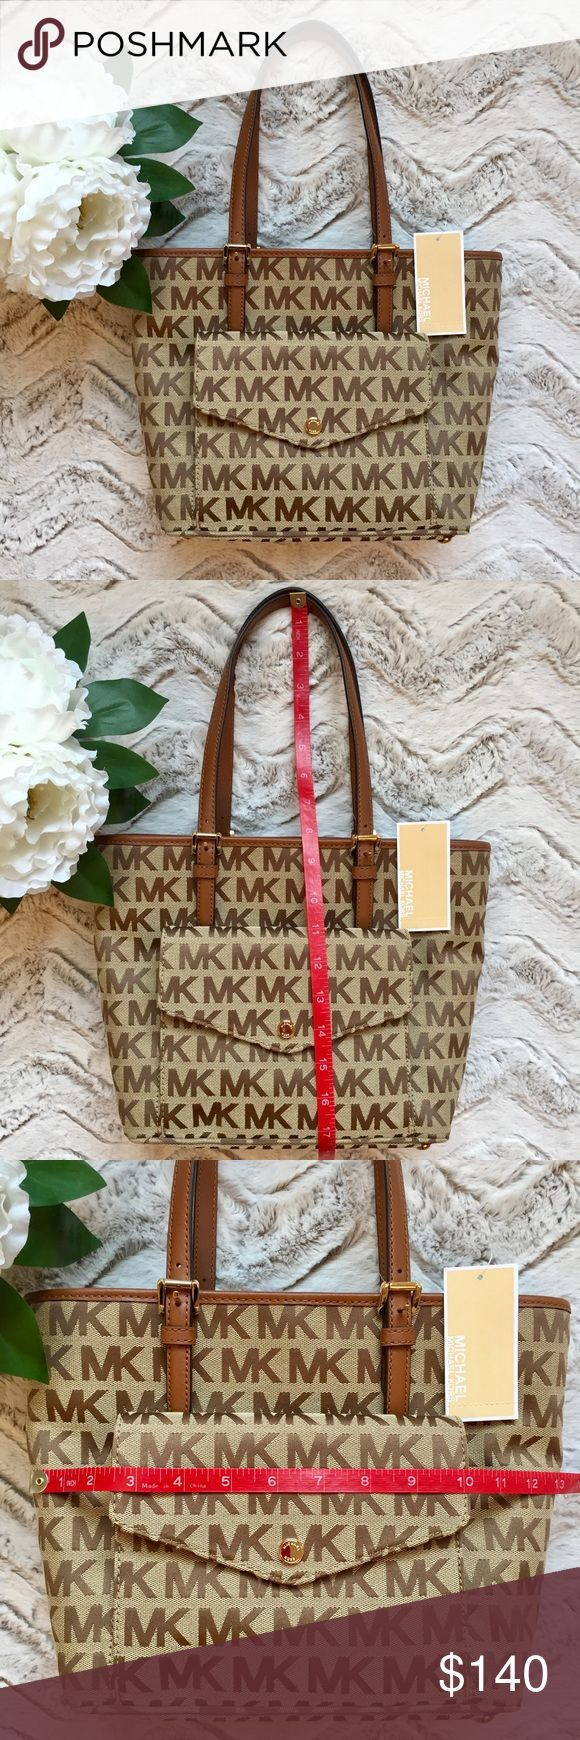 MICHAEL KORS PURSE JET SET TOTE BROWN MK LOGO MICHAEL KORS' glamorous tote keeps jet-setting essentials easily organized and within reach with a pocket-lined design that includes a center pocket for your tech items, plus an outer snap wallet pocket that's perfect for stowing your passport and ID.  See pictures for measurements.  Inside is 1 center zipped pocket, 1 cell phone pocket, 3 open pockets, 1 zip pocket. MICHAEL Michael Kors Bags Totes